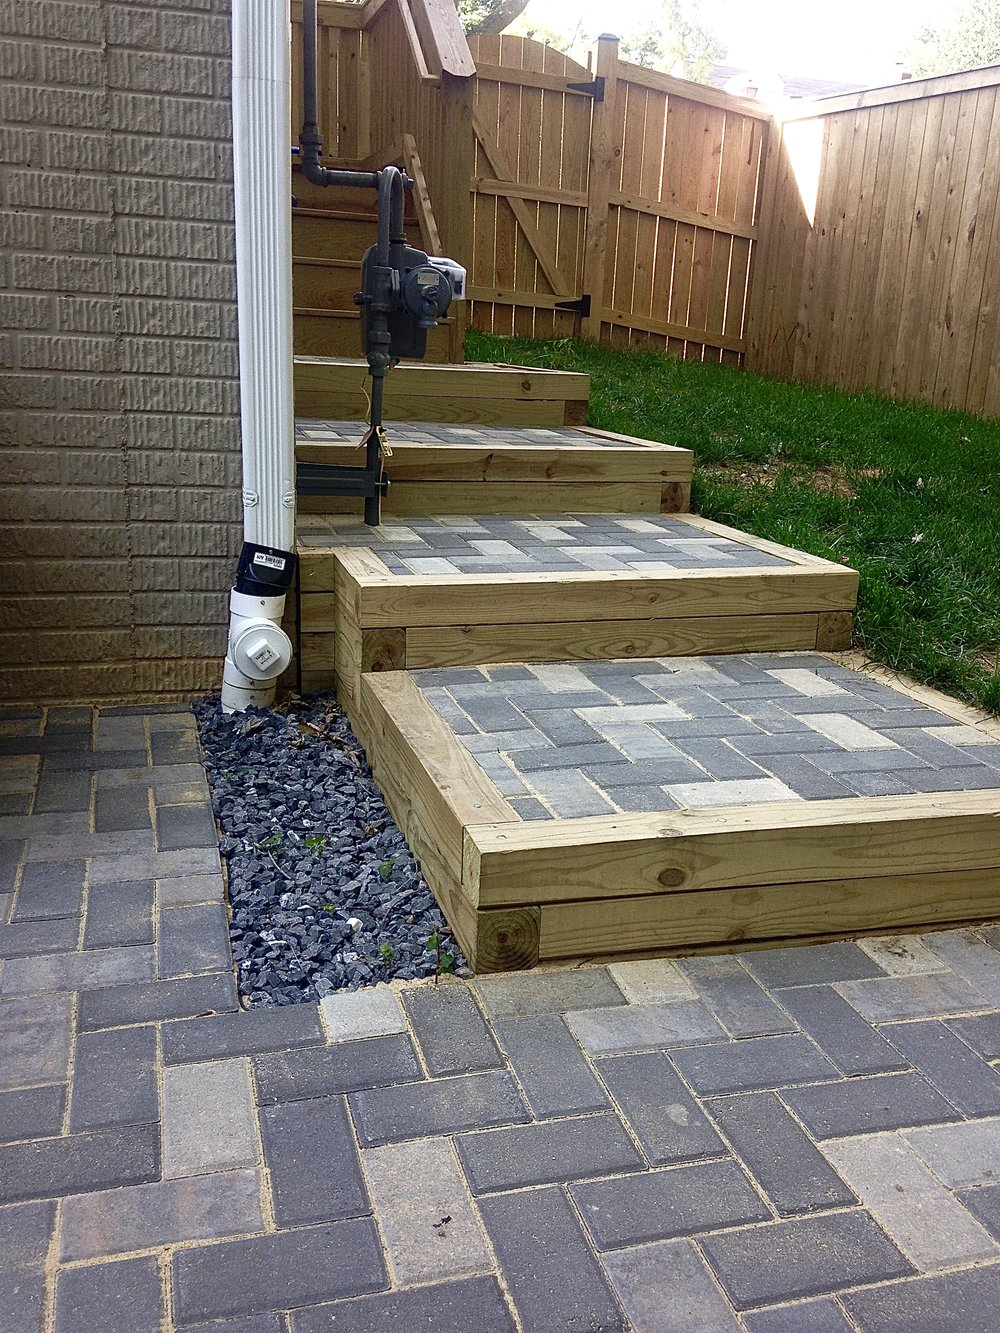 These steps match the pattern of the newly installed patio